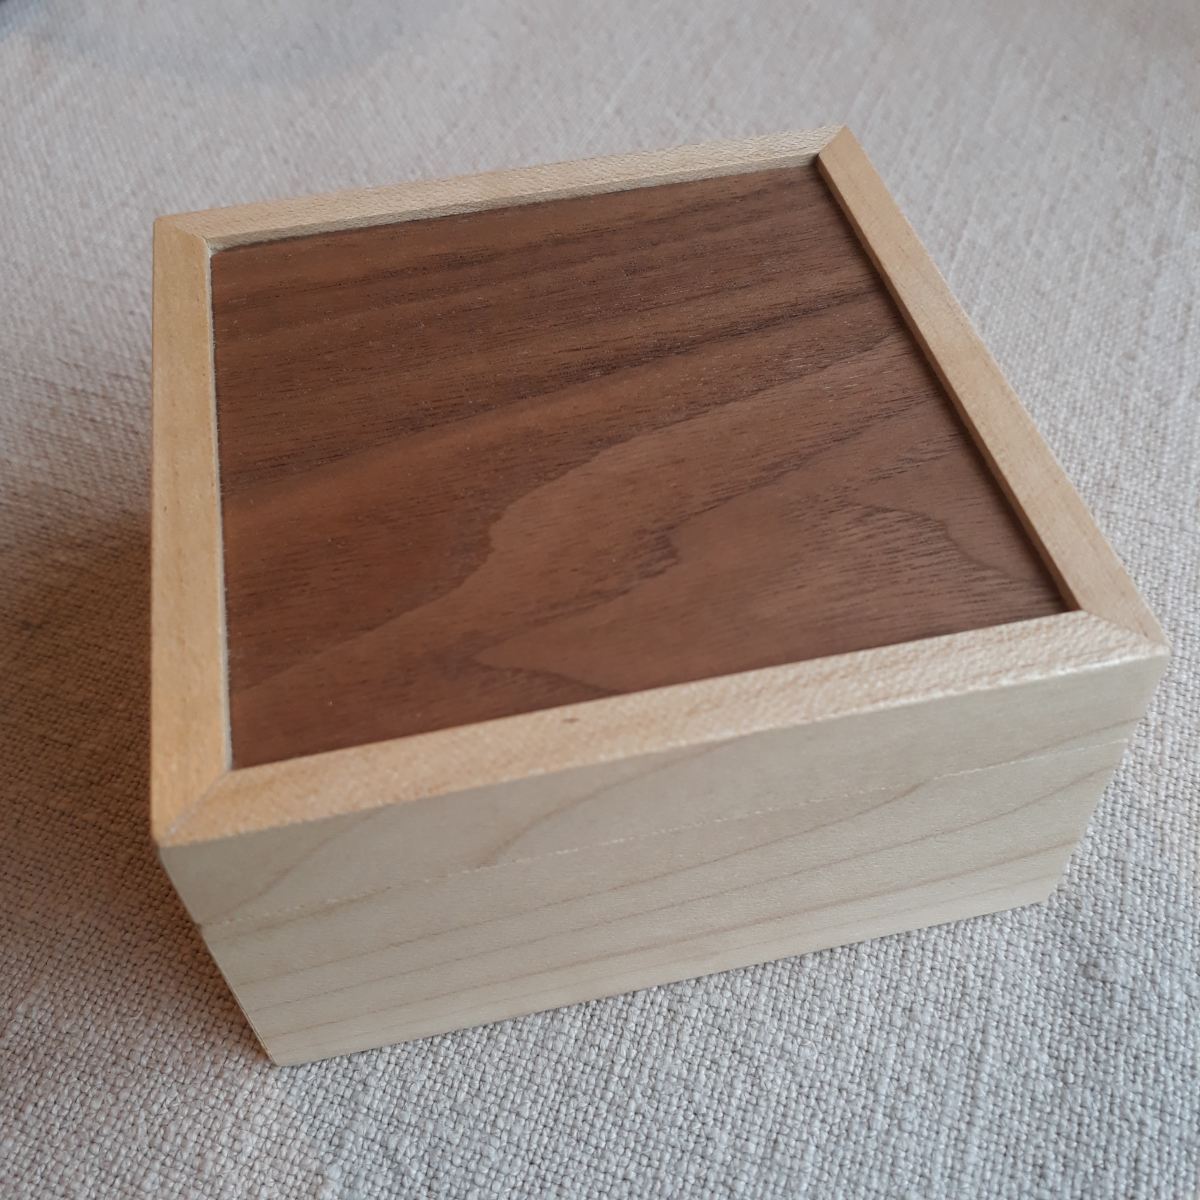 image of bespoke handcrafted decorative box